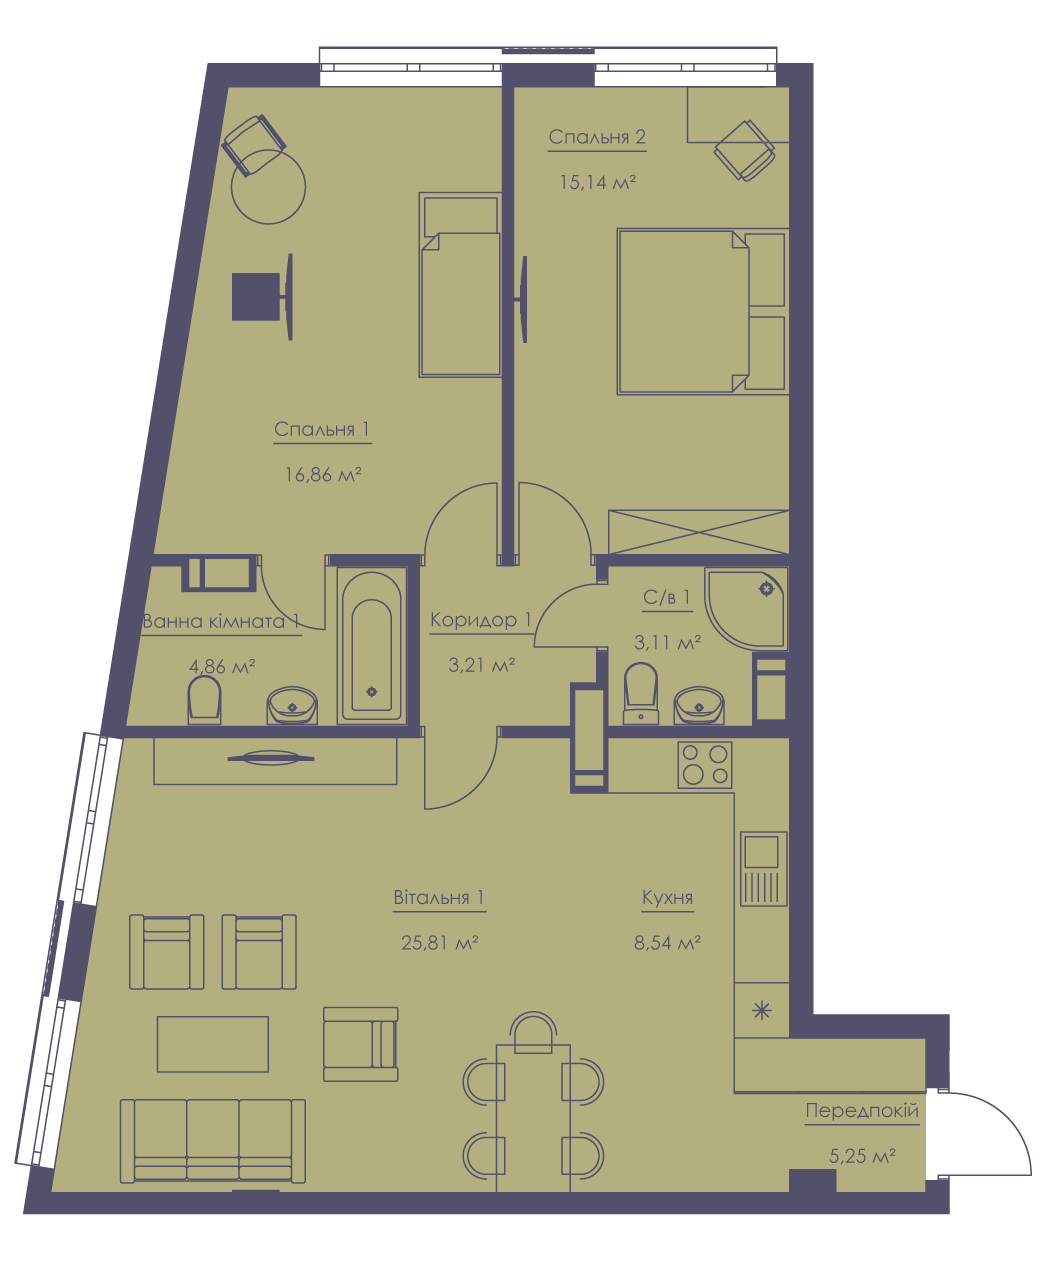 Apartment layout KV_42_3n_1_1_7-1